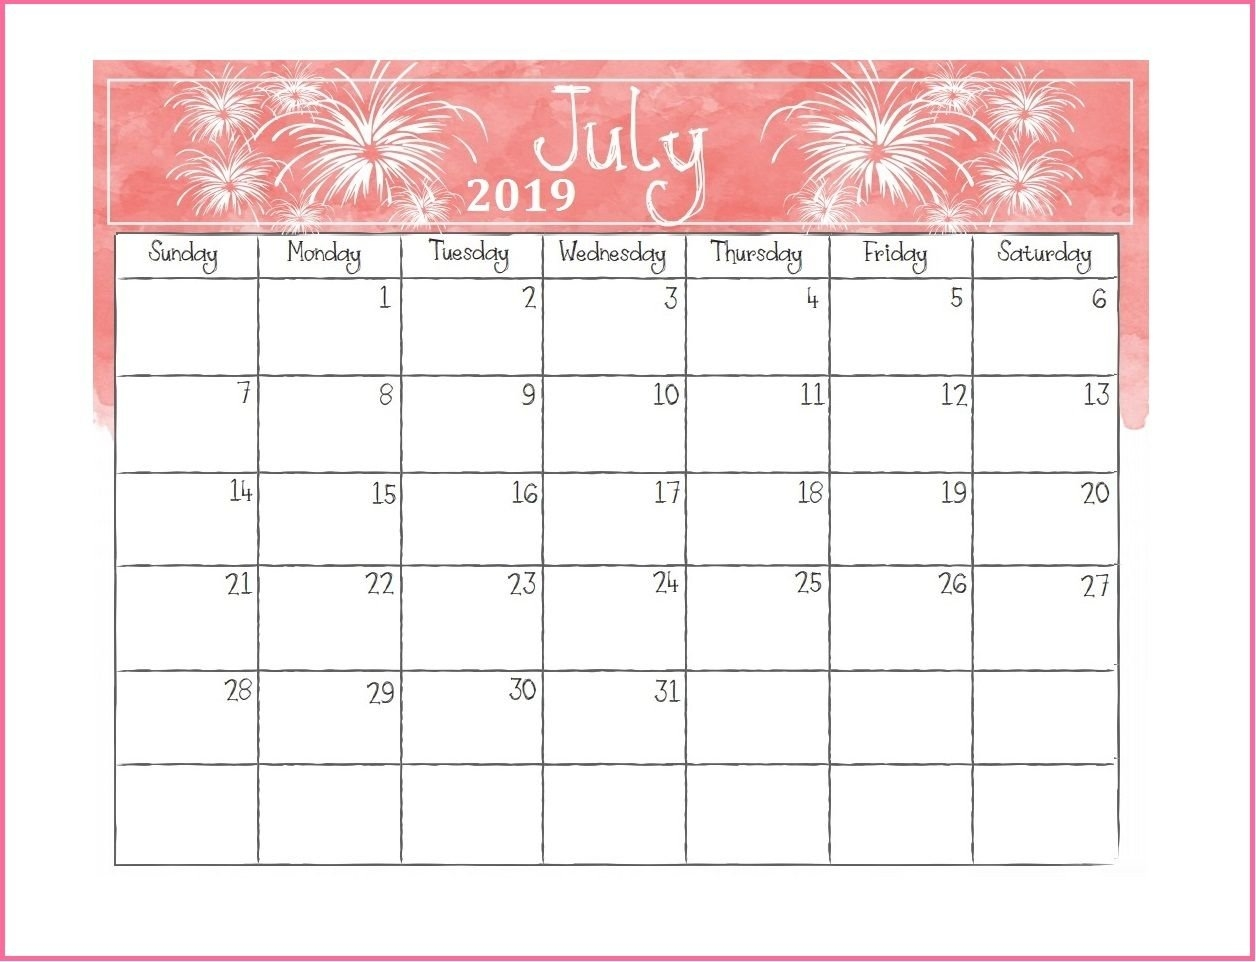 Printable July 2019 Desk Calendar | Calendars | Desk Calendars Rock N Roll Calendar 2019